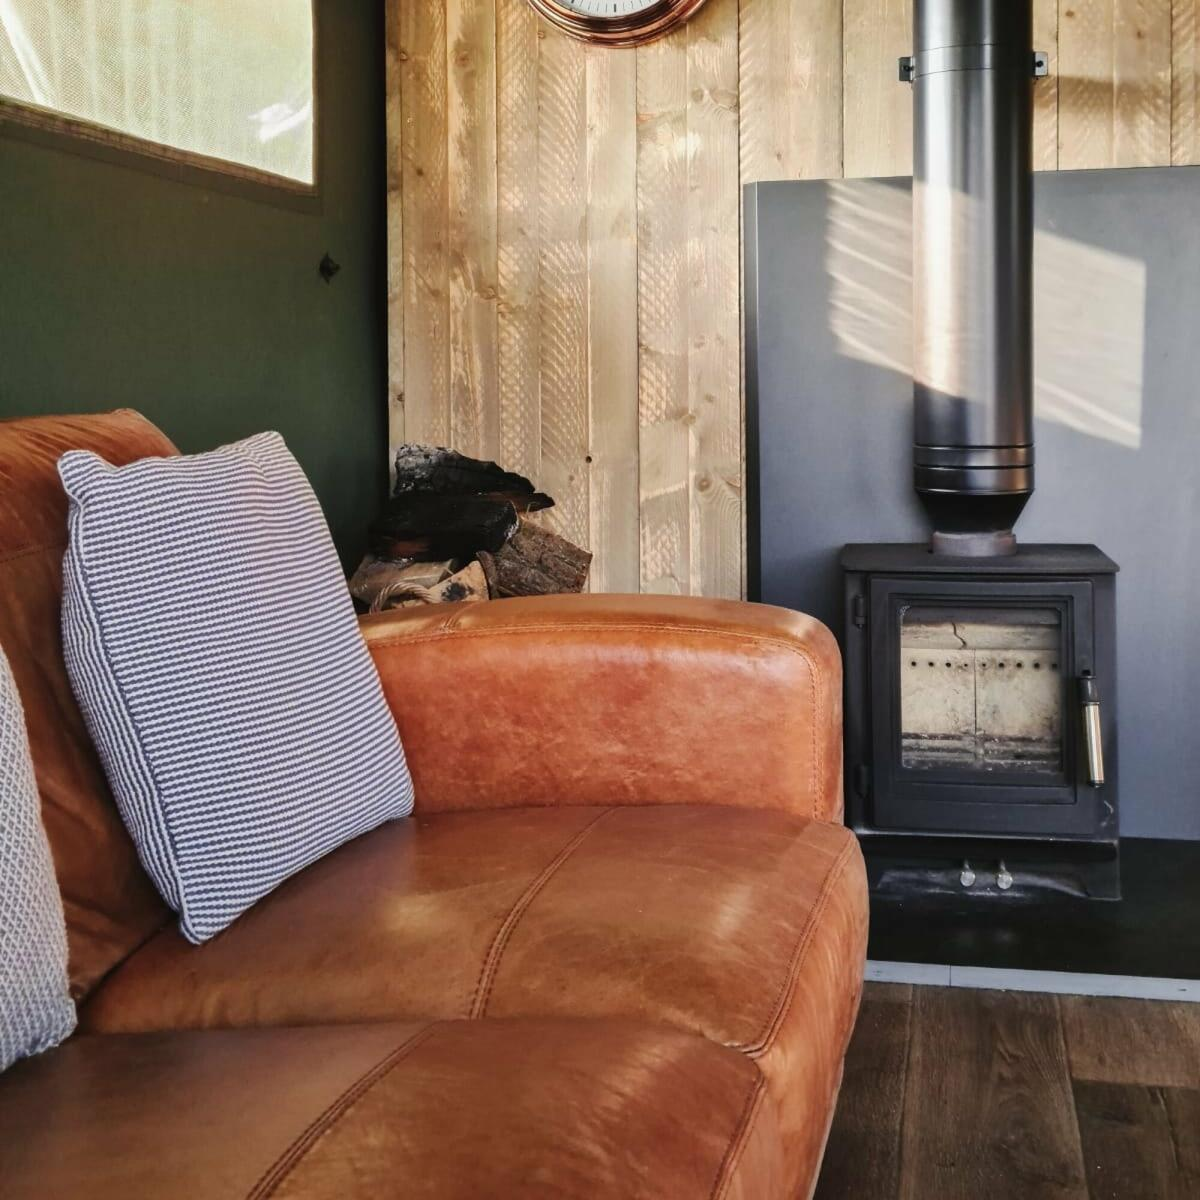 Sofas and wood burning stoves for cosy evenings